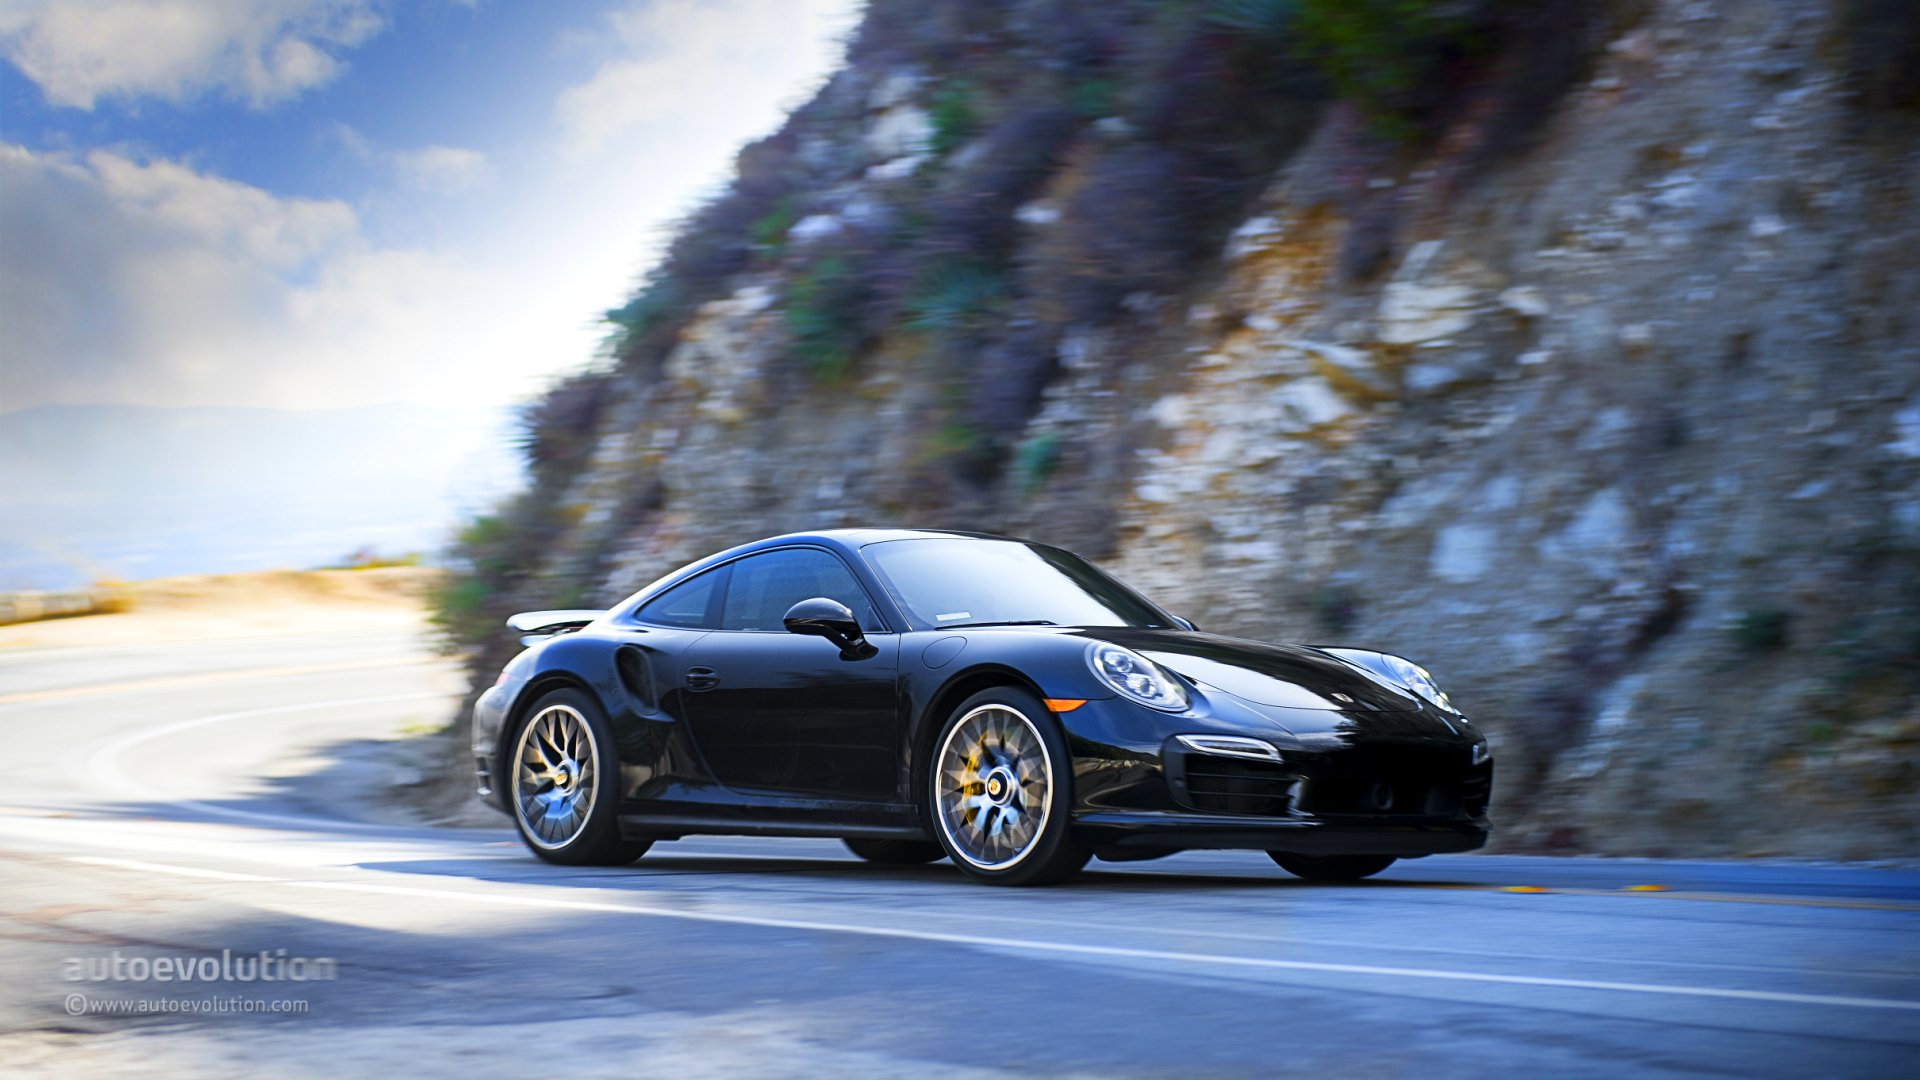 2014 porsche 911 991 turbo s coupe cars wallpaper 1920x1080 805762 wallpaperup